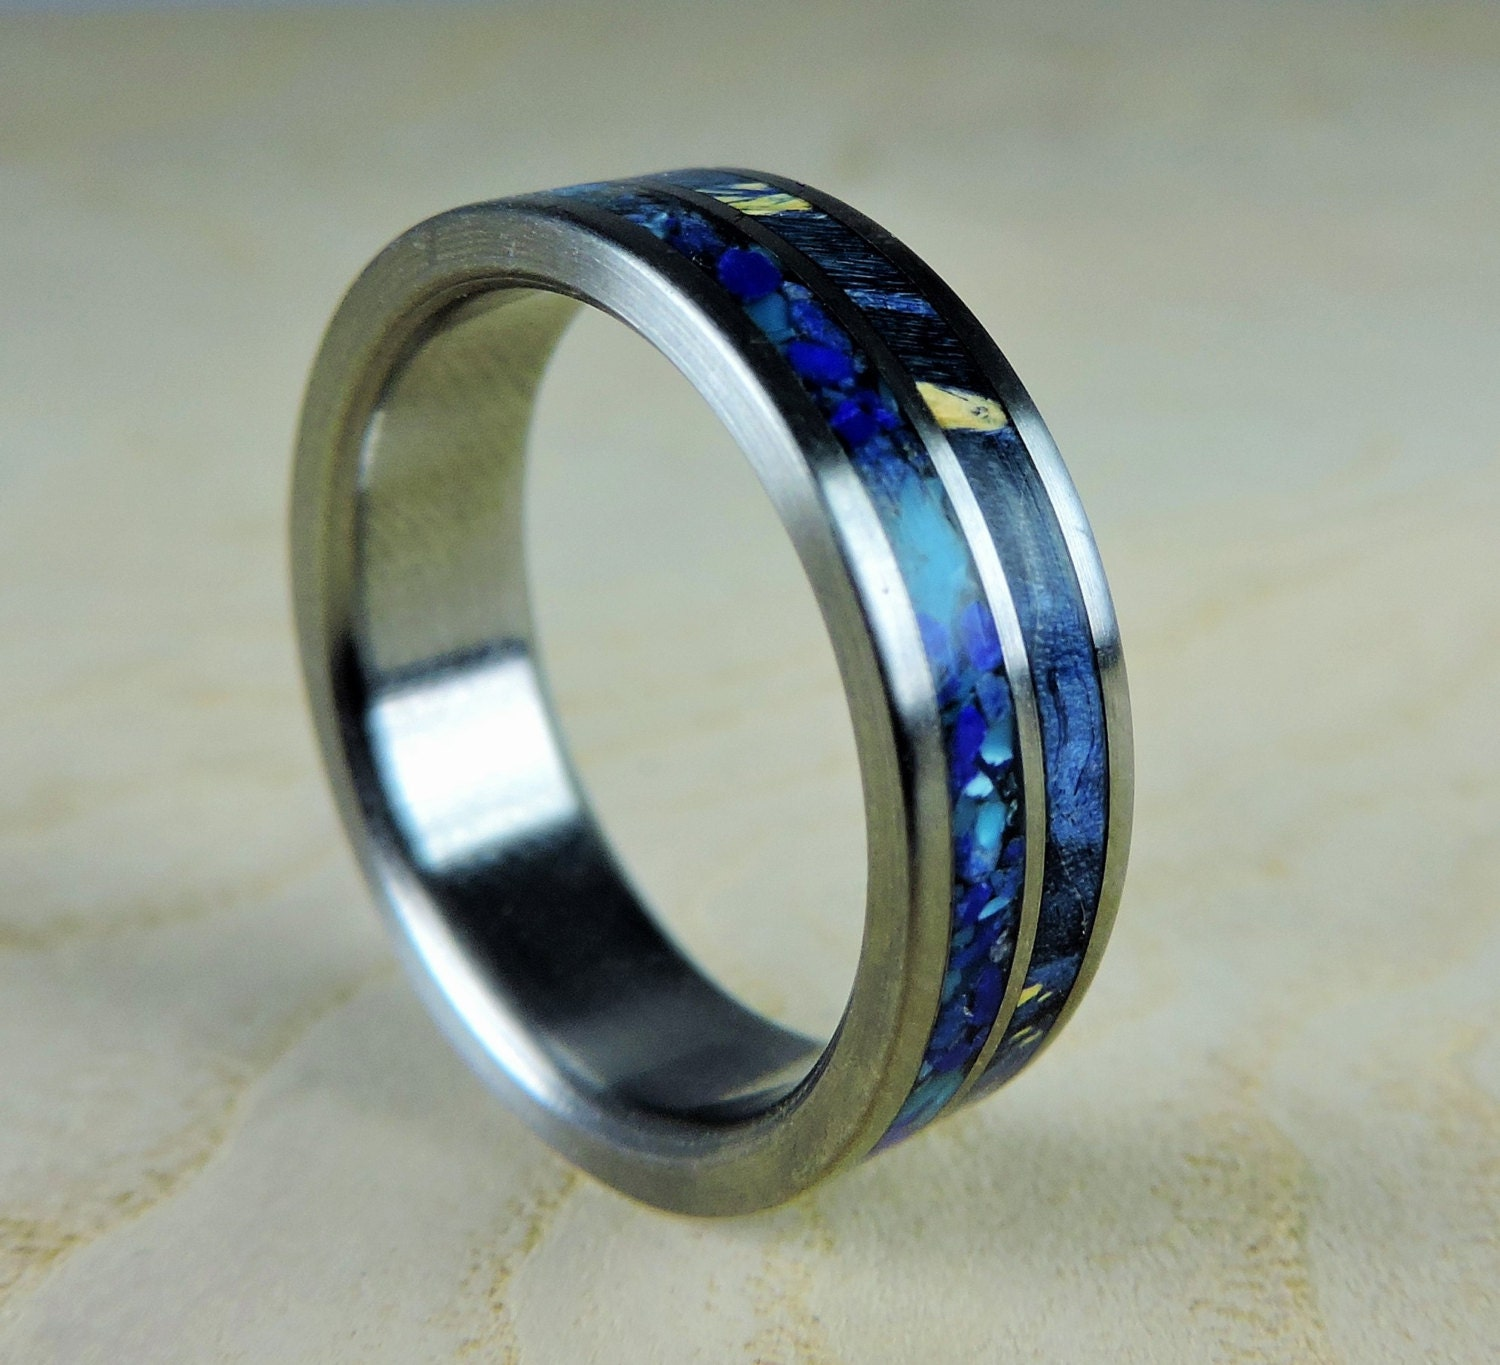 ring wedding lovely corners bands rings download black plated with and titanium band ideas mens